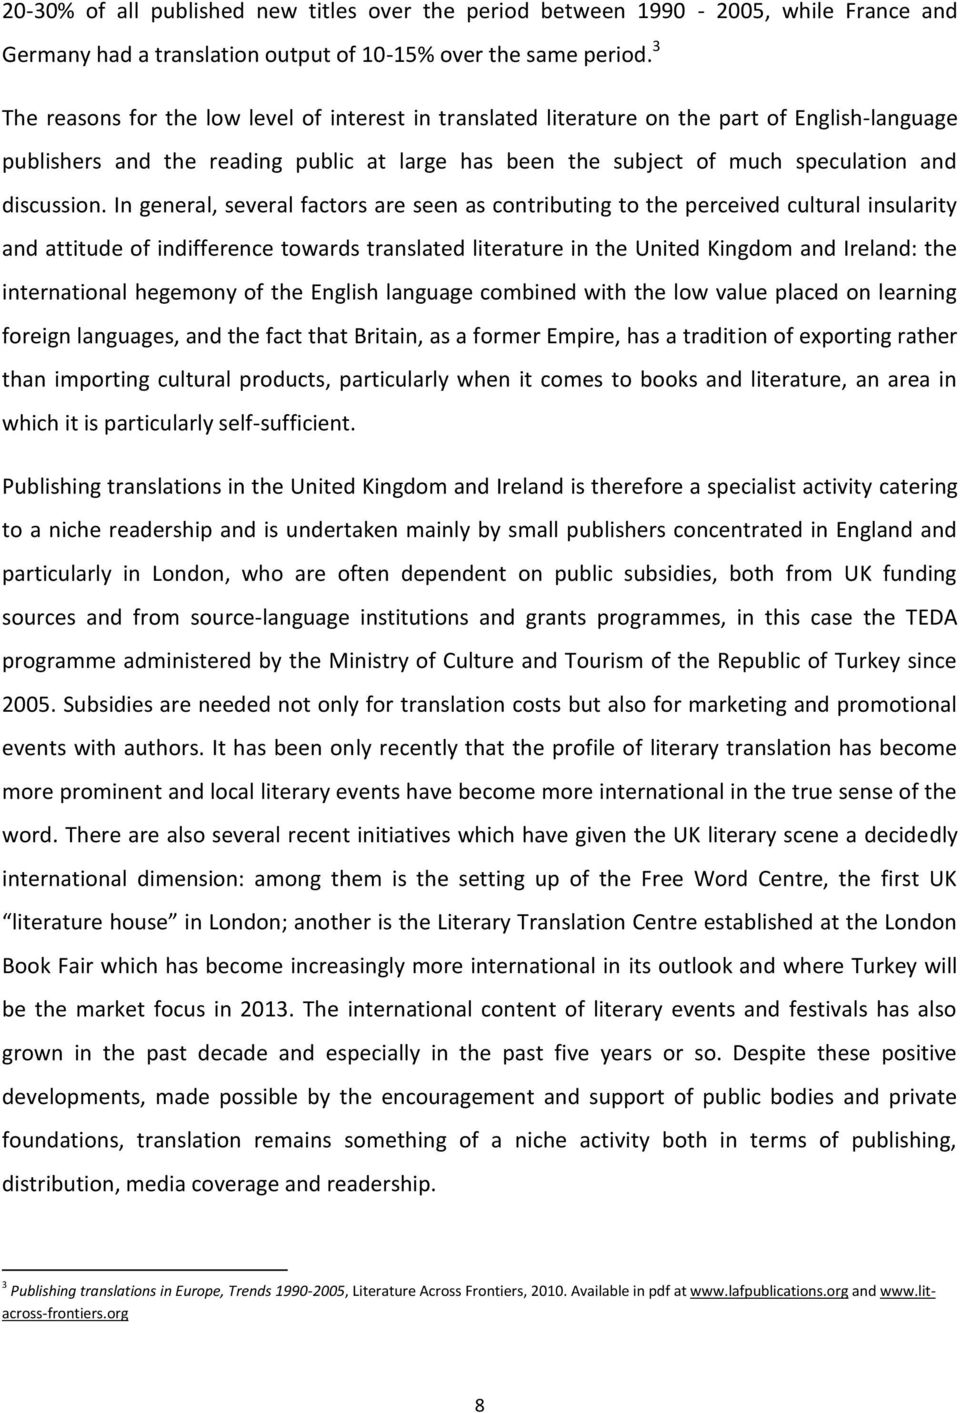 In general, several factors are seen as contributing to the perceived cultural insularity and attitude of indifference towards translated literature in the United Kingdom and Ireland: the